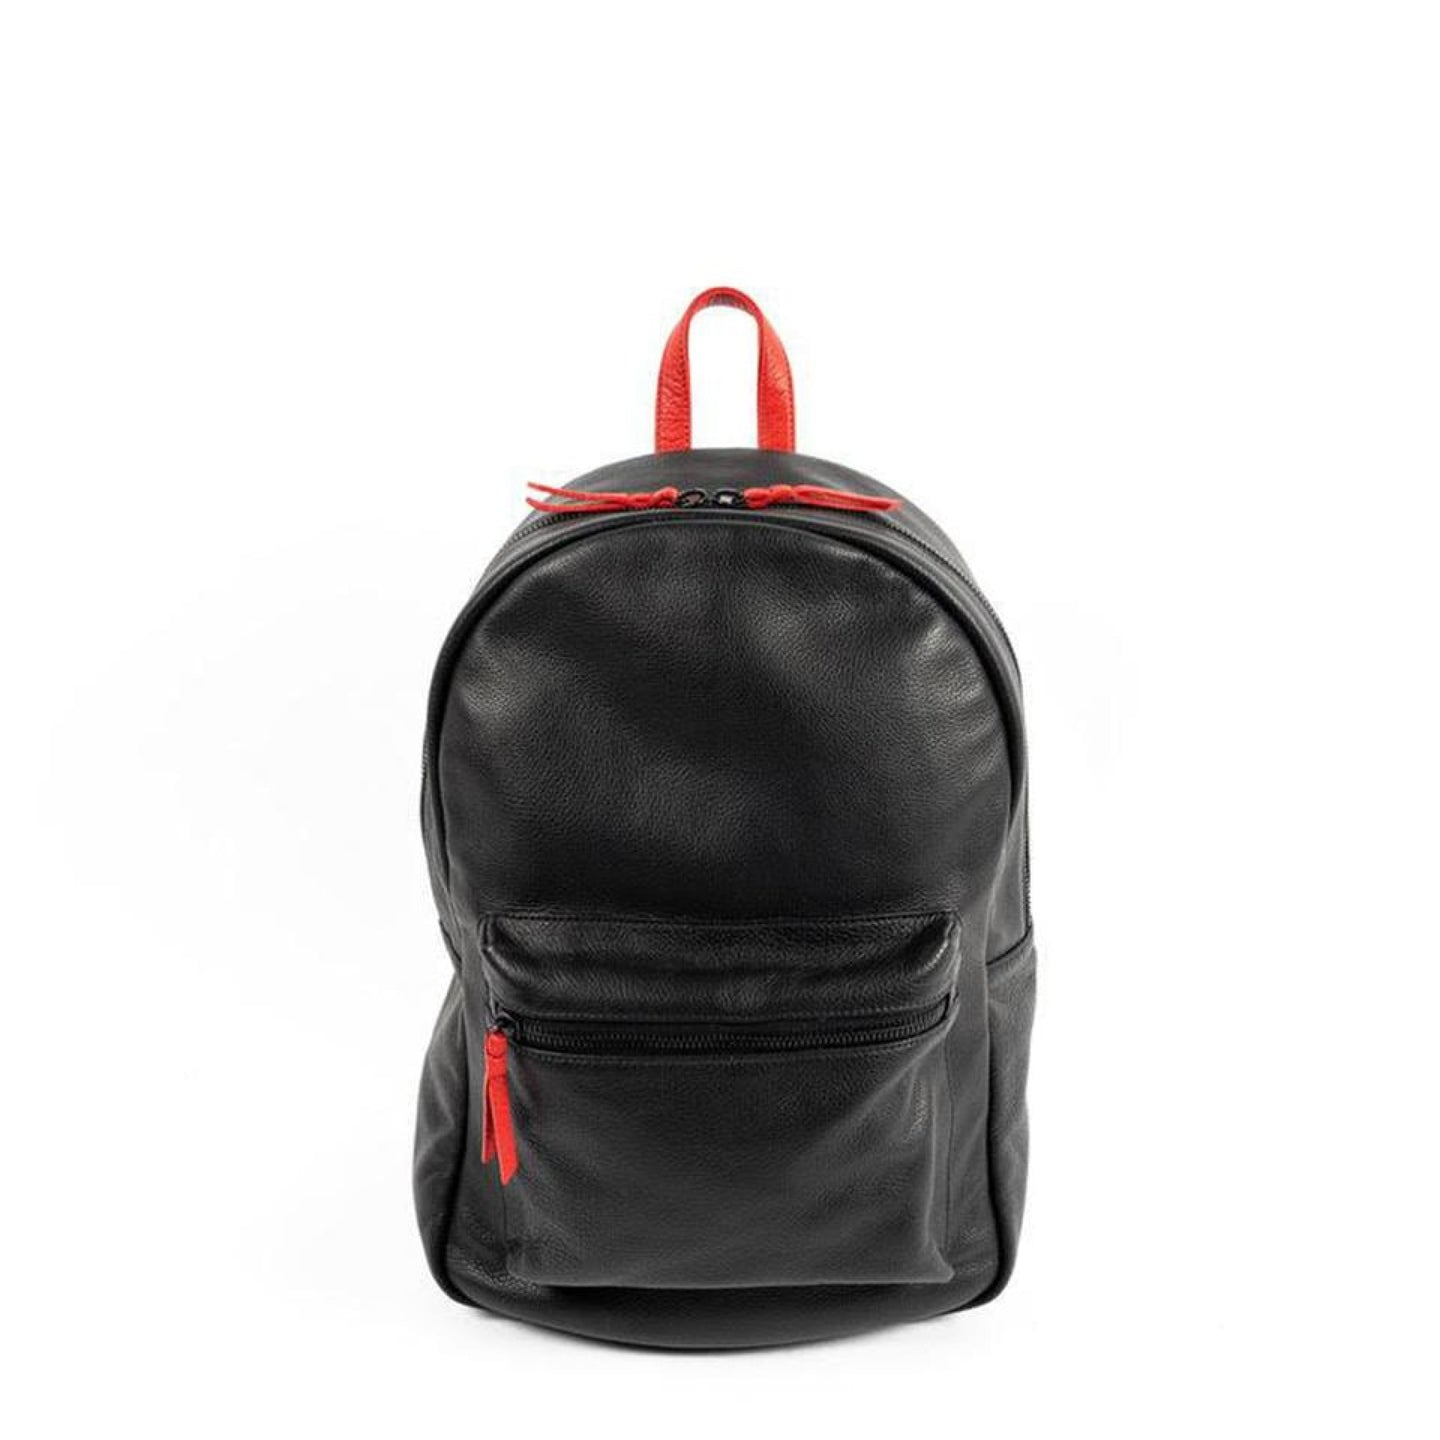 Backpack - Jet Black (A1) - Backpack Made in USA | Made By Alex